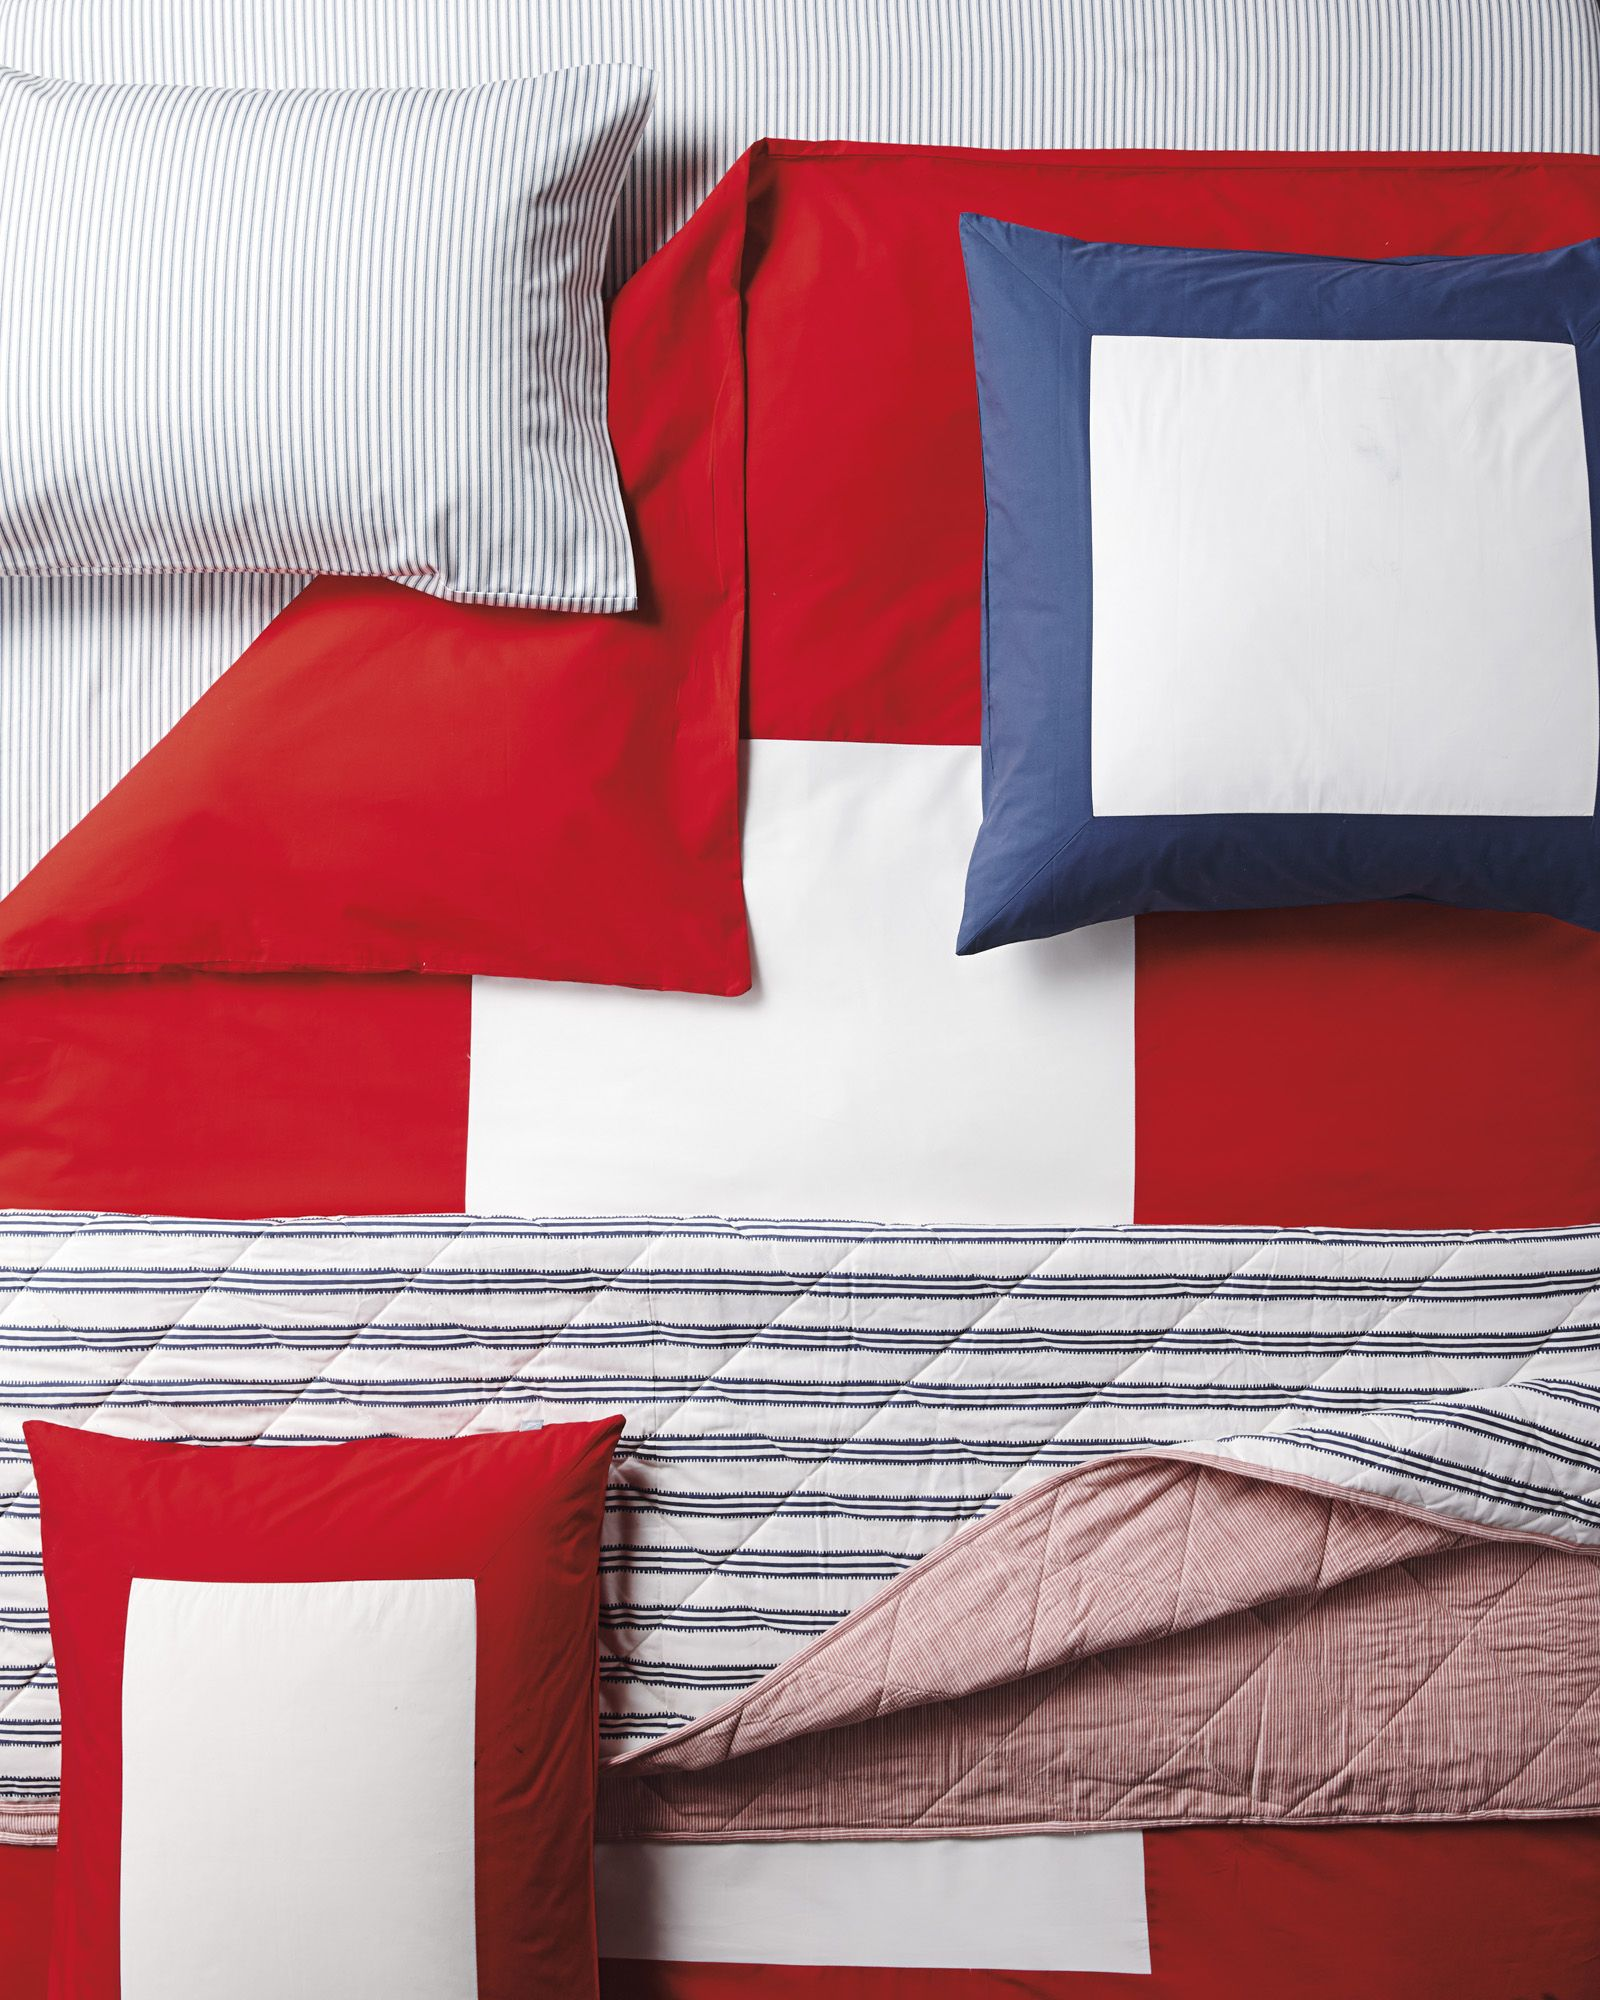 uk stonewashed topic grey linen sets white sham ikea striped blue and cover restoration red king hardware related to stripe quilt barn bedding pottery woven beauteous lily cute wovenstripe natural serena ticking black duvet